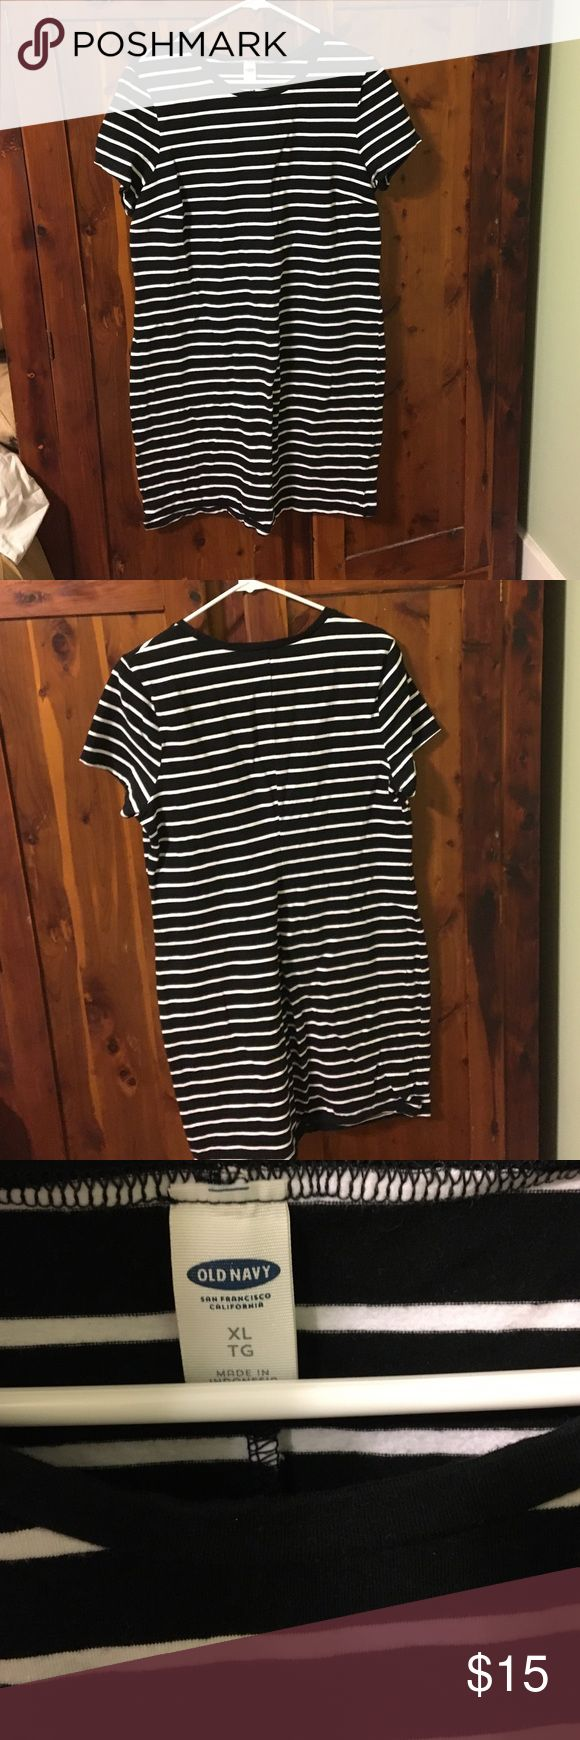 Black and white striped dress Old navy striped dress. The fabric has a little stretch to it. Very flattering and VERY comfortable. Never been worn. The last photo is the same dress in black, just for a fit reference. Old Navy Dresses